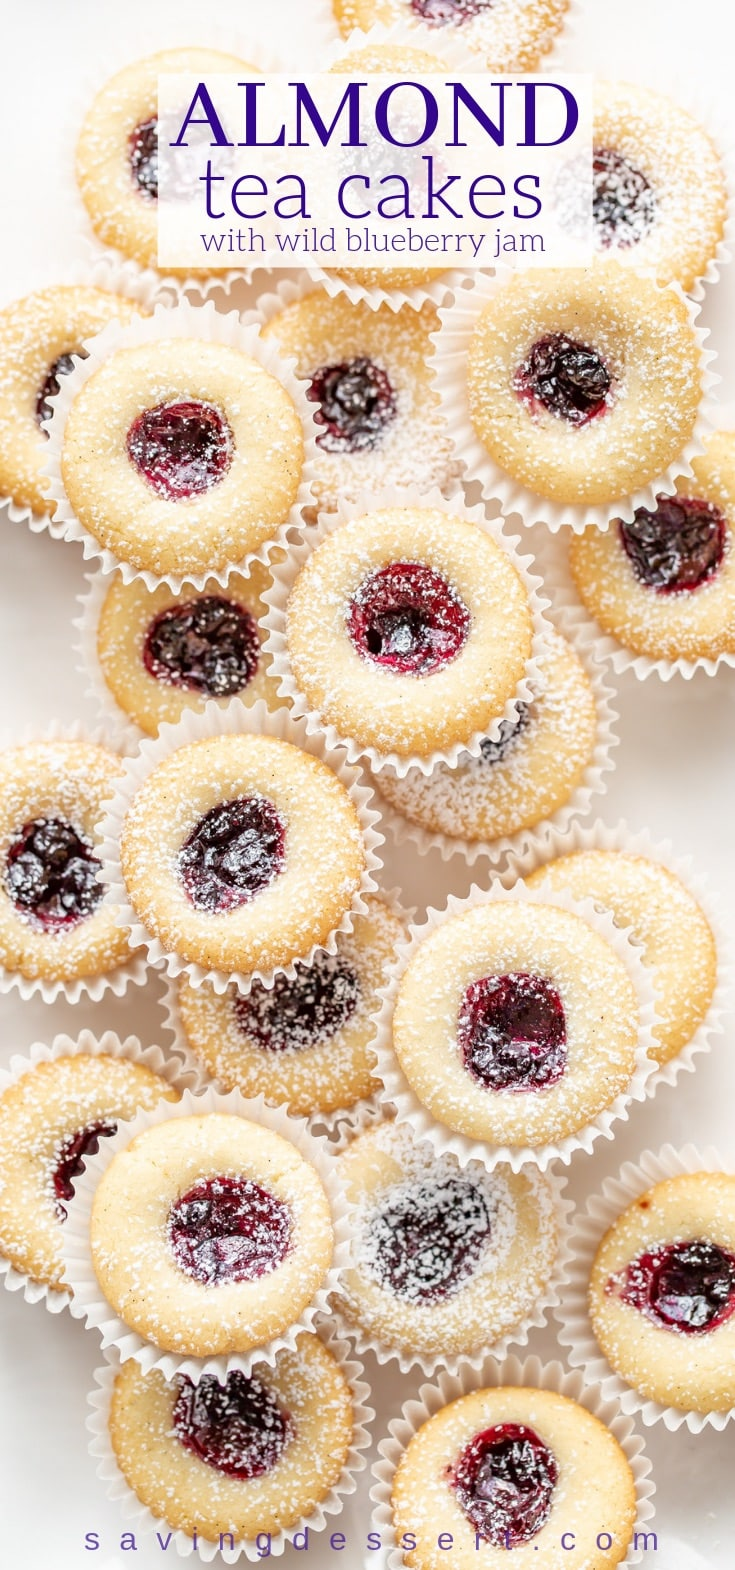 Almond Tea Cakes with Wild Blueberry Jam - tender little buttery gems with great texture and loads of flavor from the almond extract and almond flour. #cookies #teacakes #teacookies #almondcookies #almondteacakes #blueberryteacakes #dessert